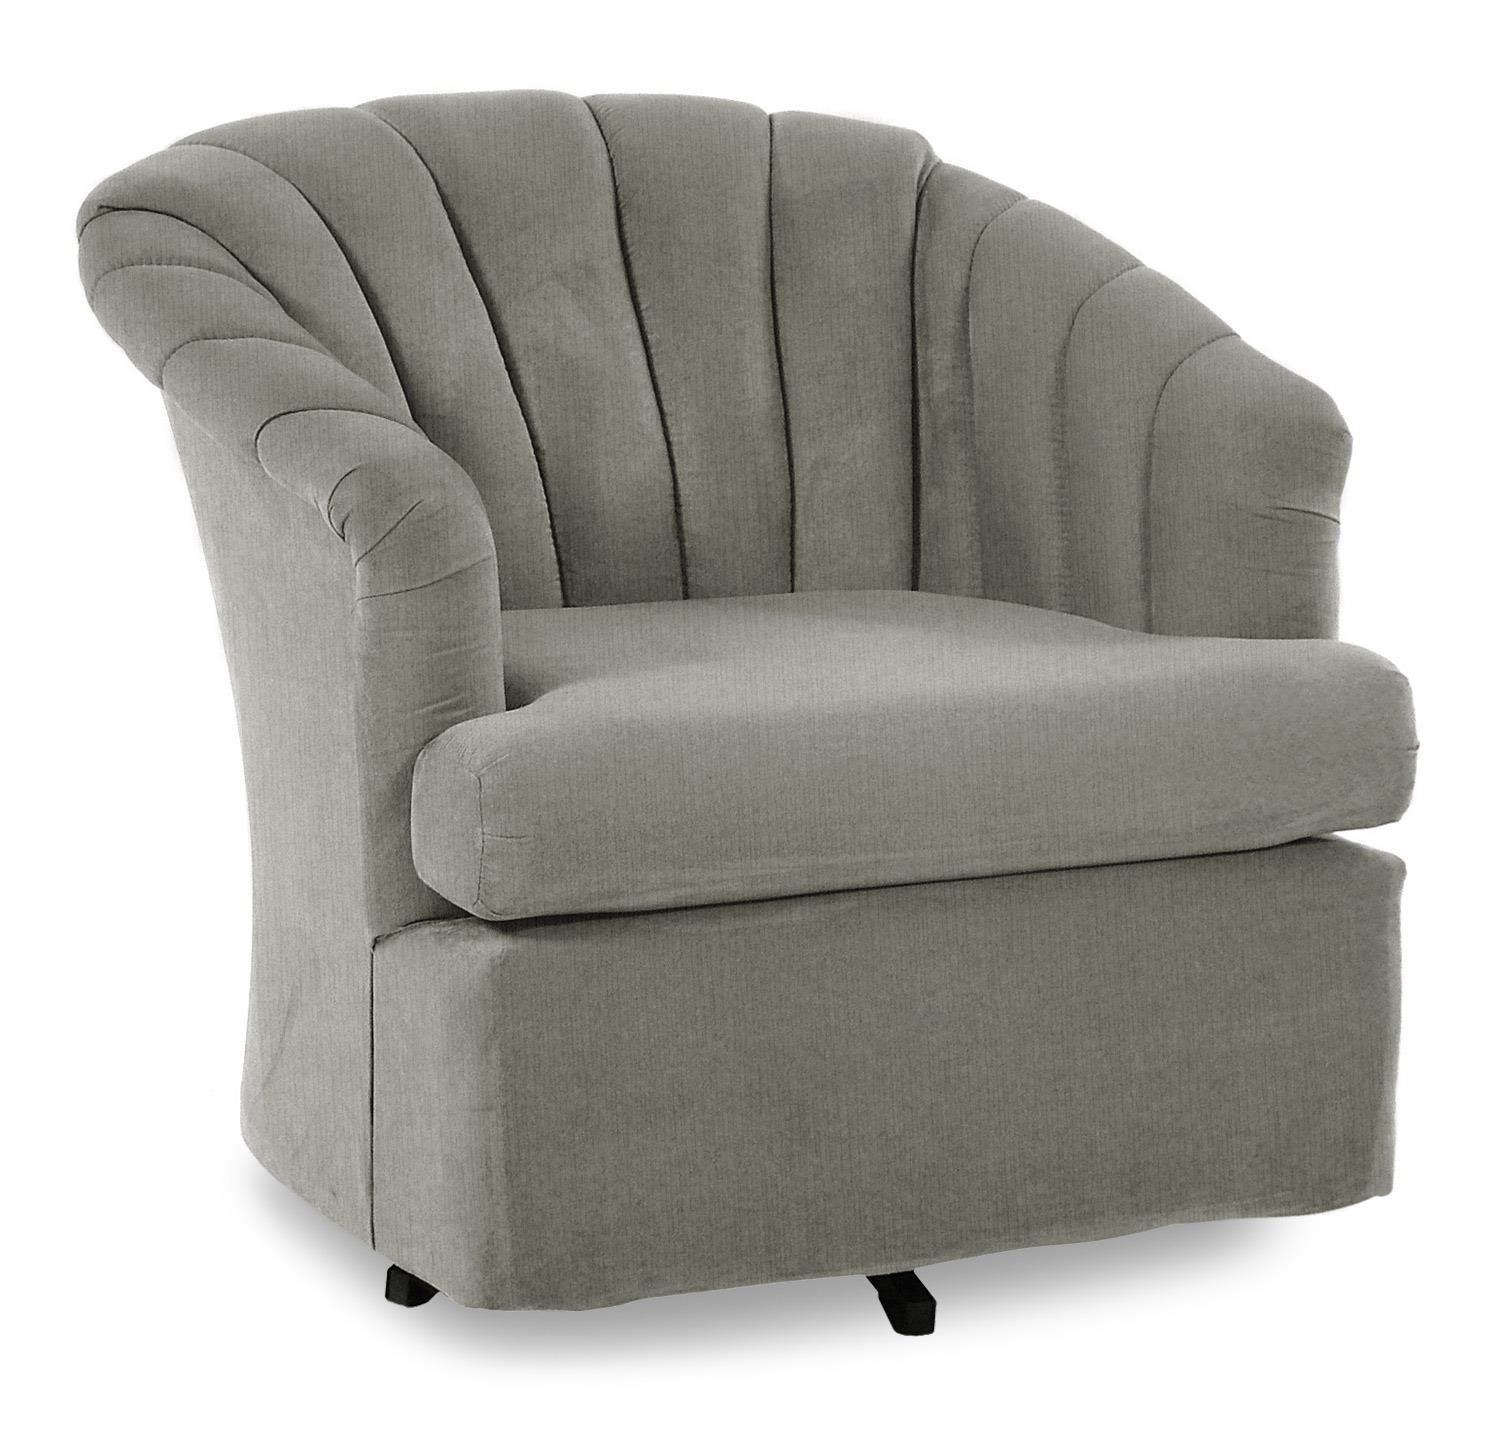 Exceptionnel Best Home Furnishings Chairs   Swivel BarrelElaine Swivel Barrel Chair